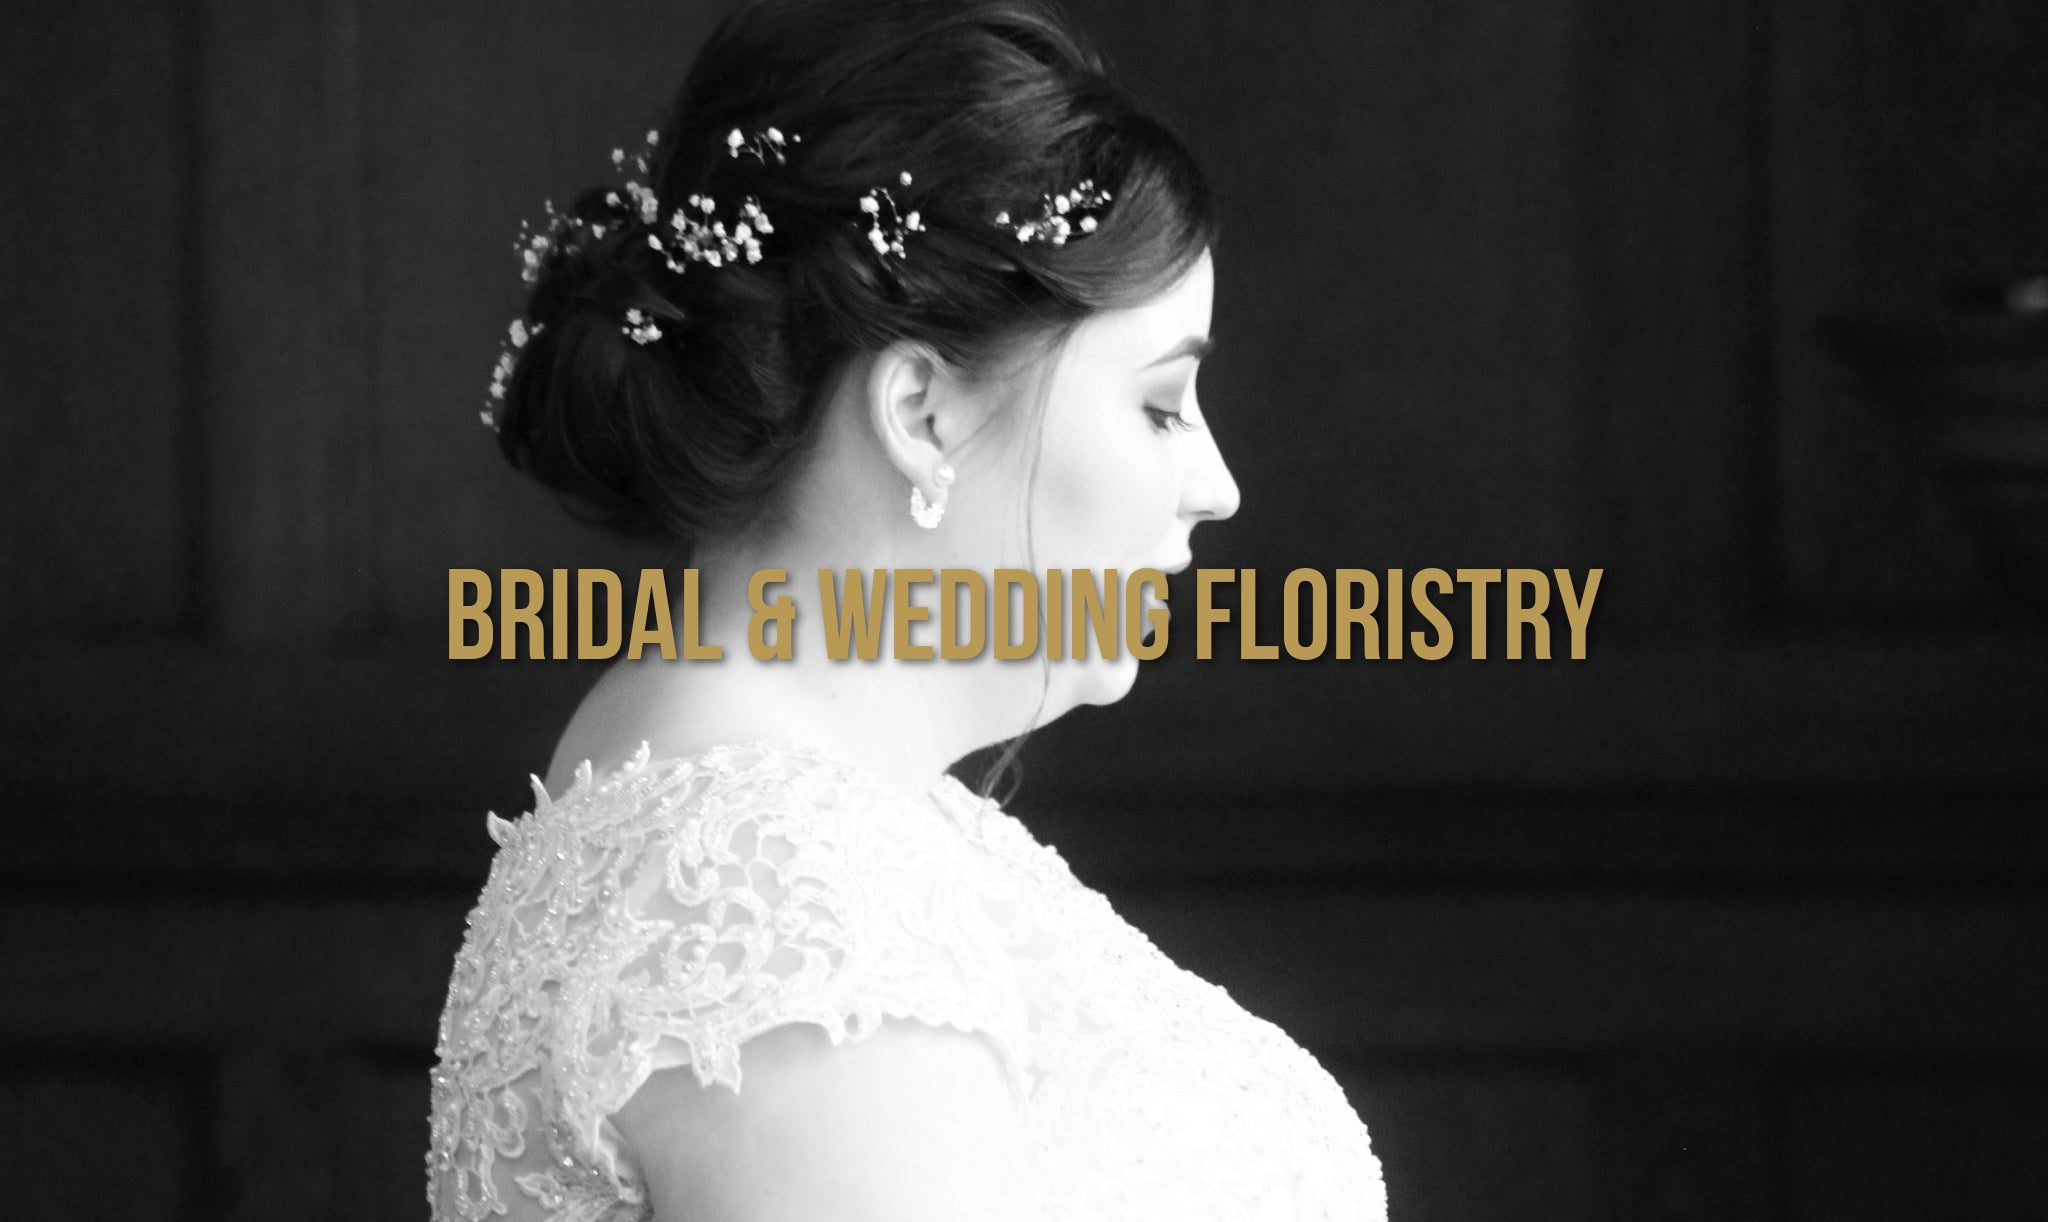 XOXO Bridal and Wedding Floristry